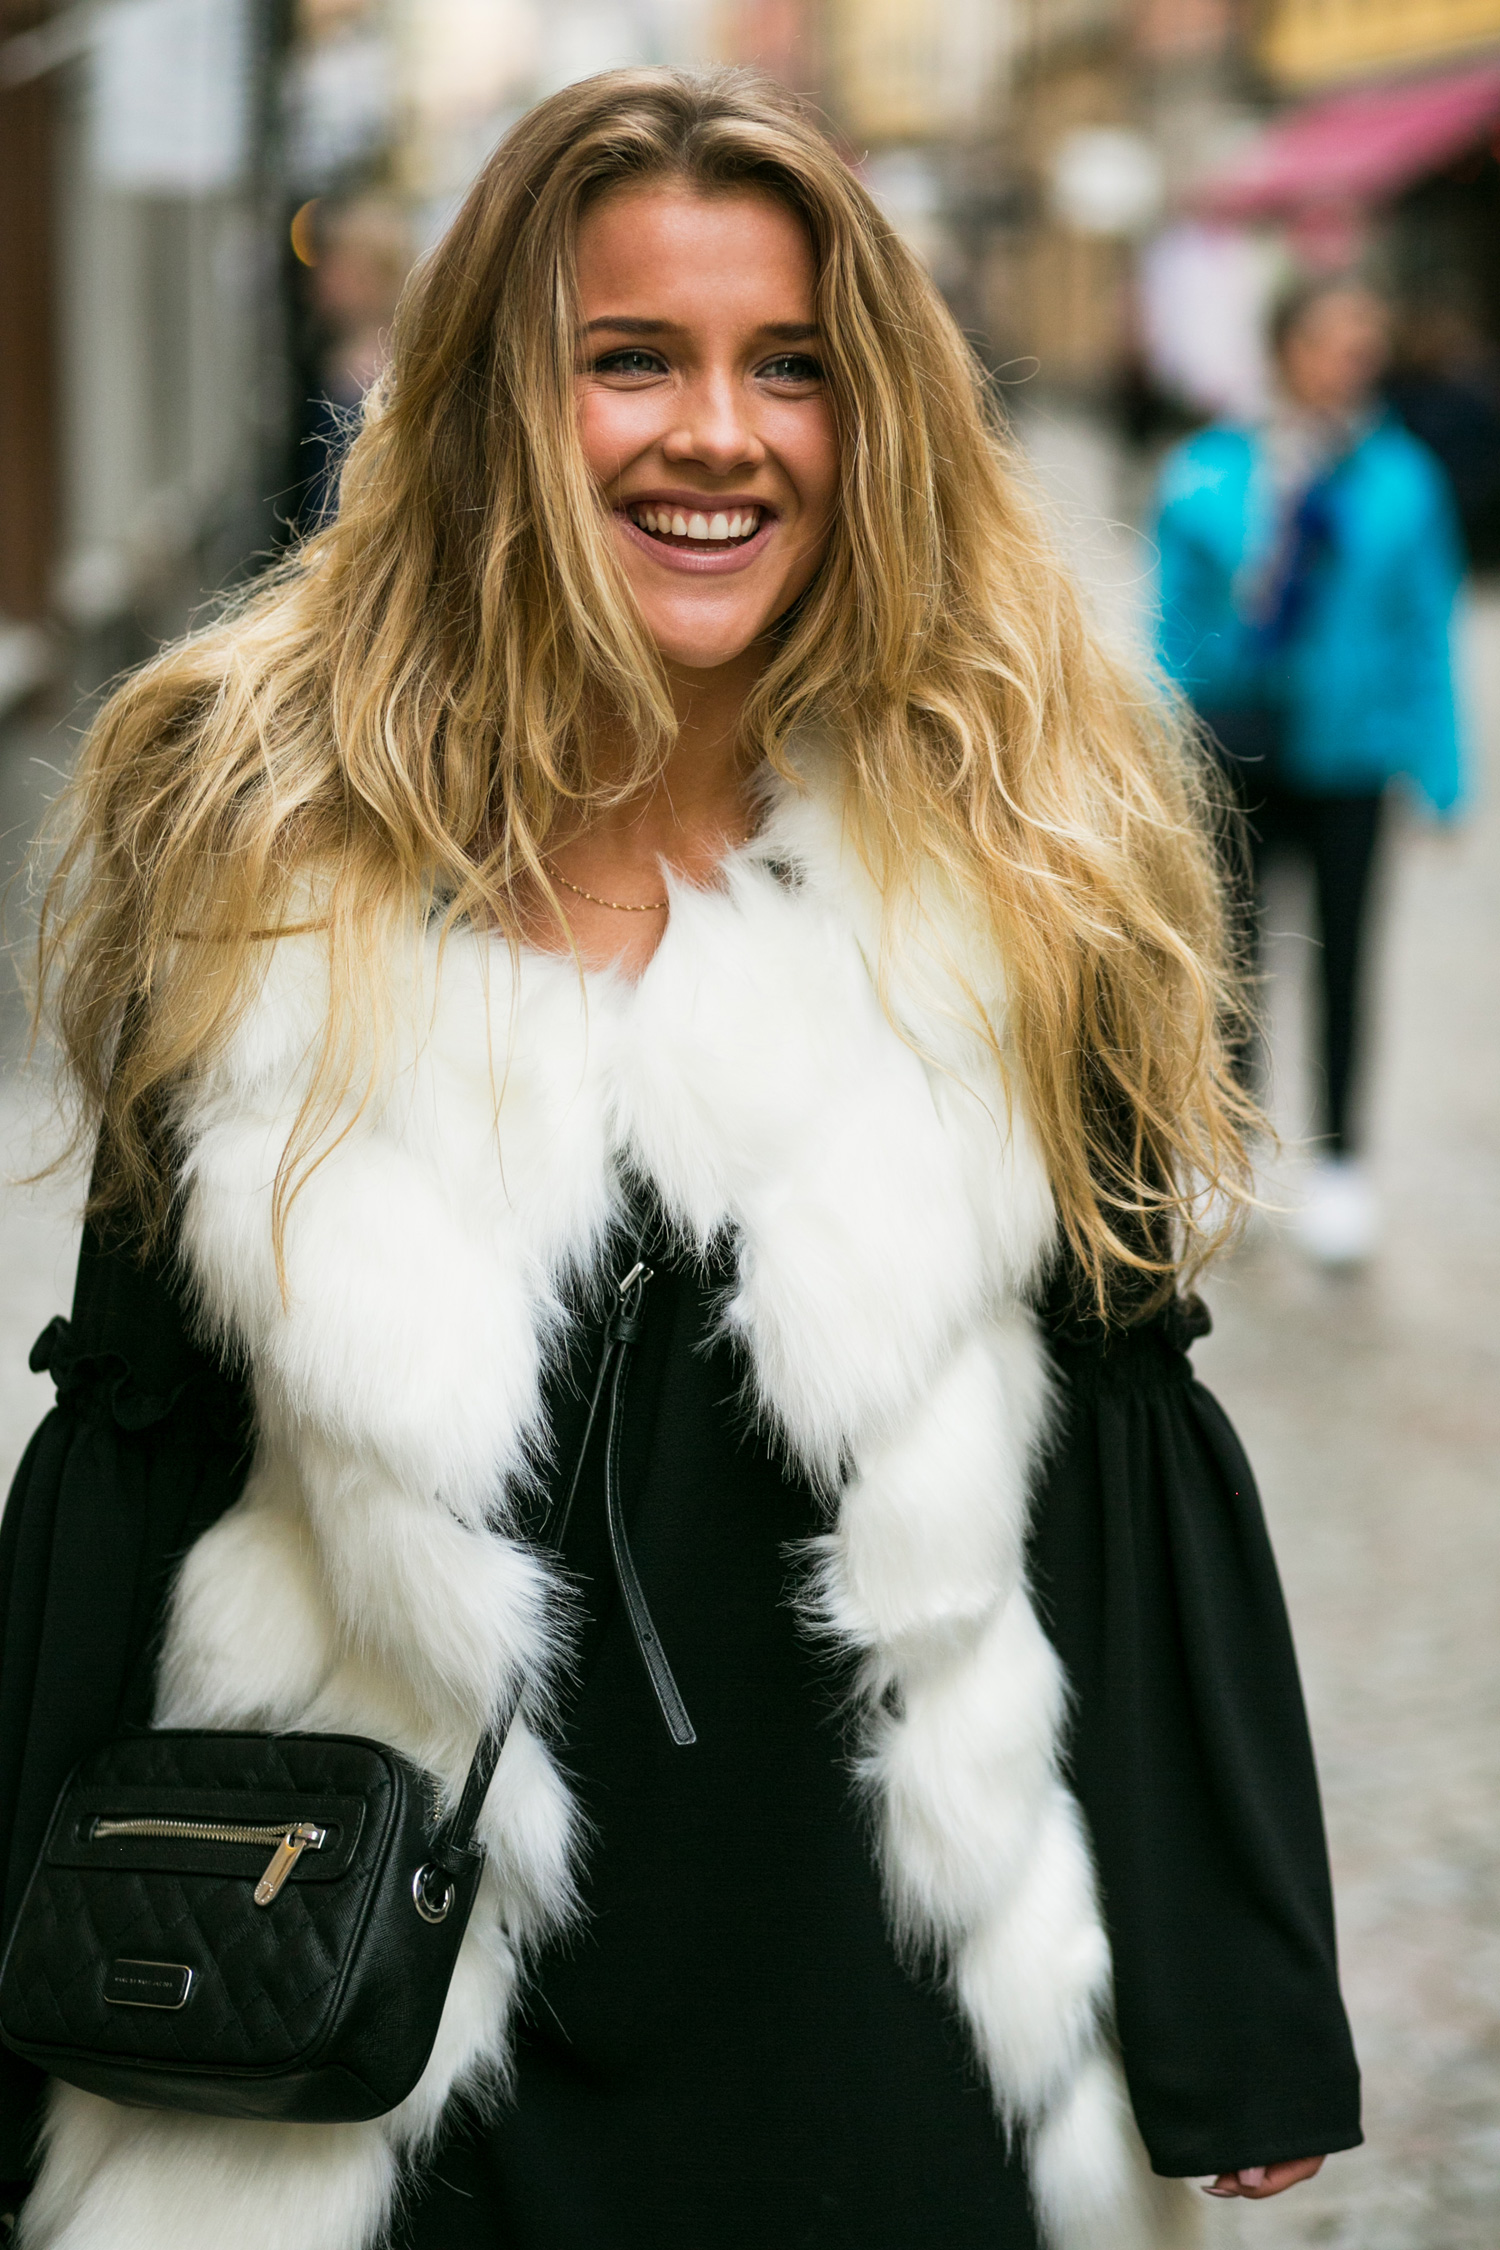 006-stockholm-blogger-fashion.jpg